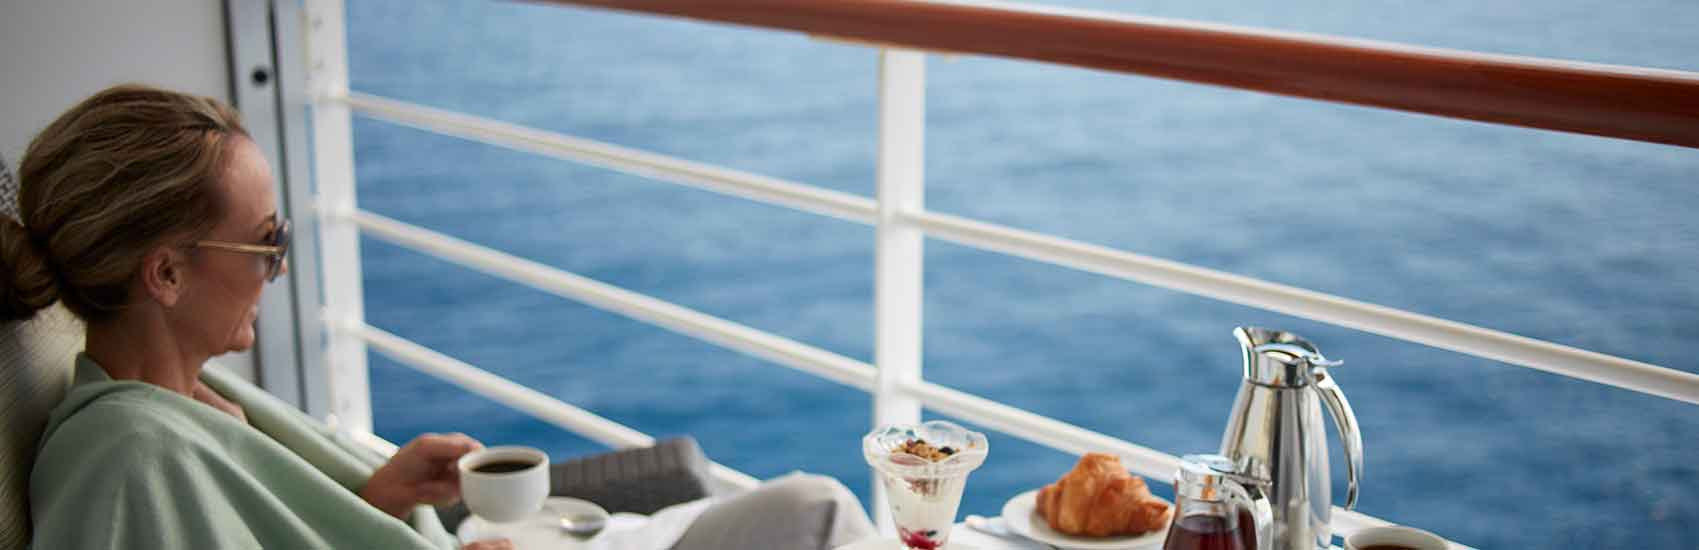 Discover Your Next Travel Story With Oceania Cruises 2